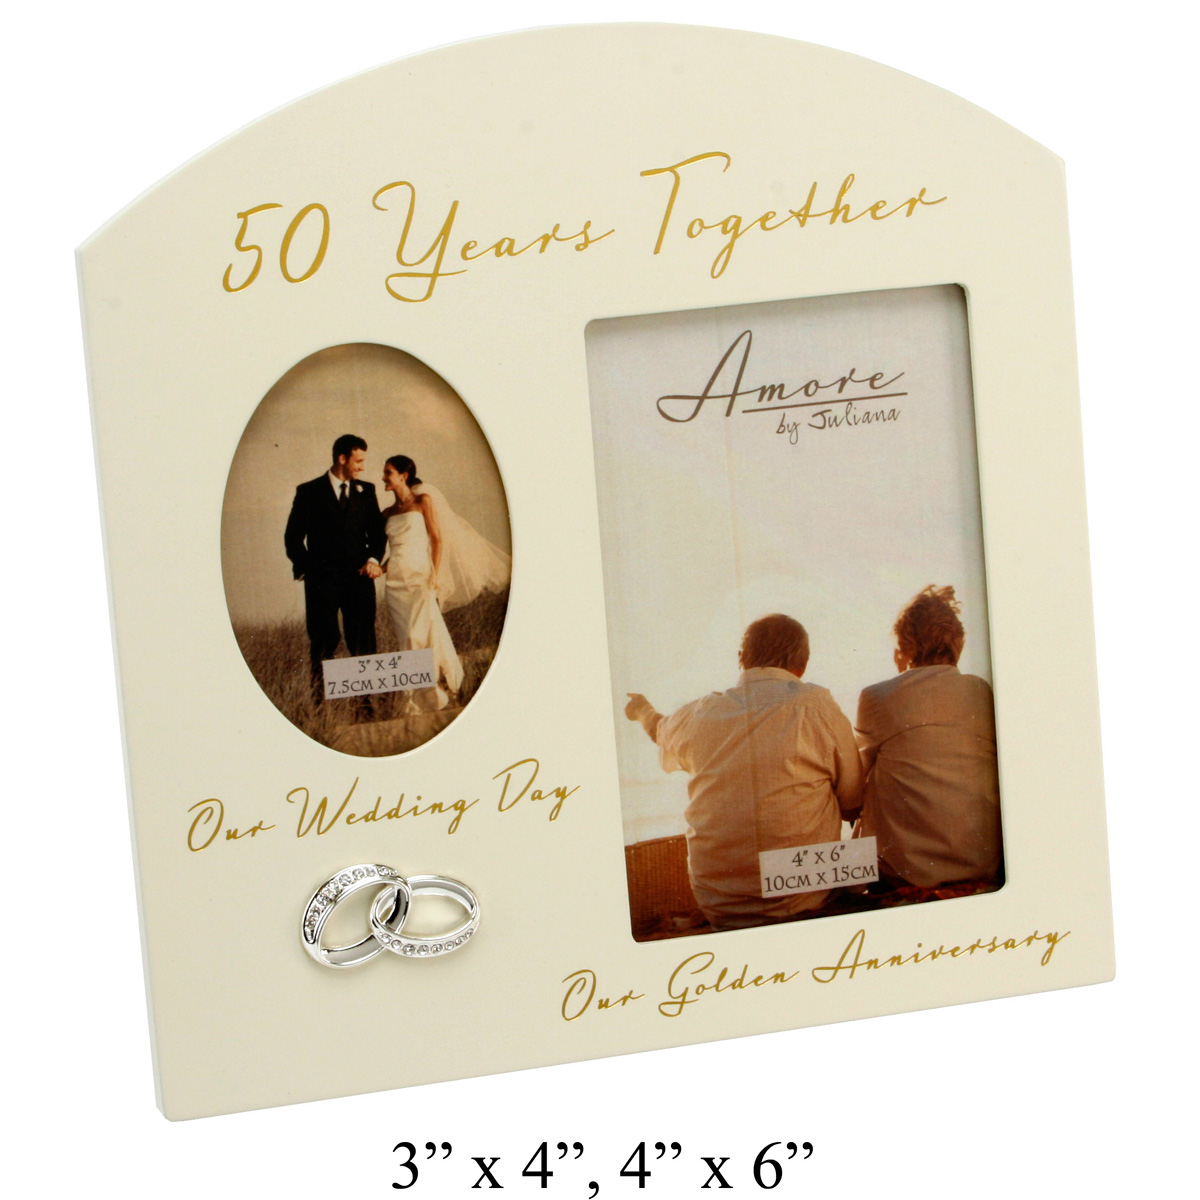 Wedding Gift Picture Frames Suggestions : ... Frames. 50th Golden Wedding Anniversary Multi-Picture Frame 6